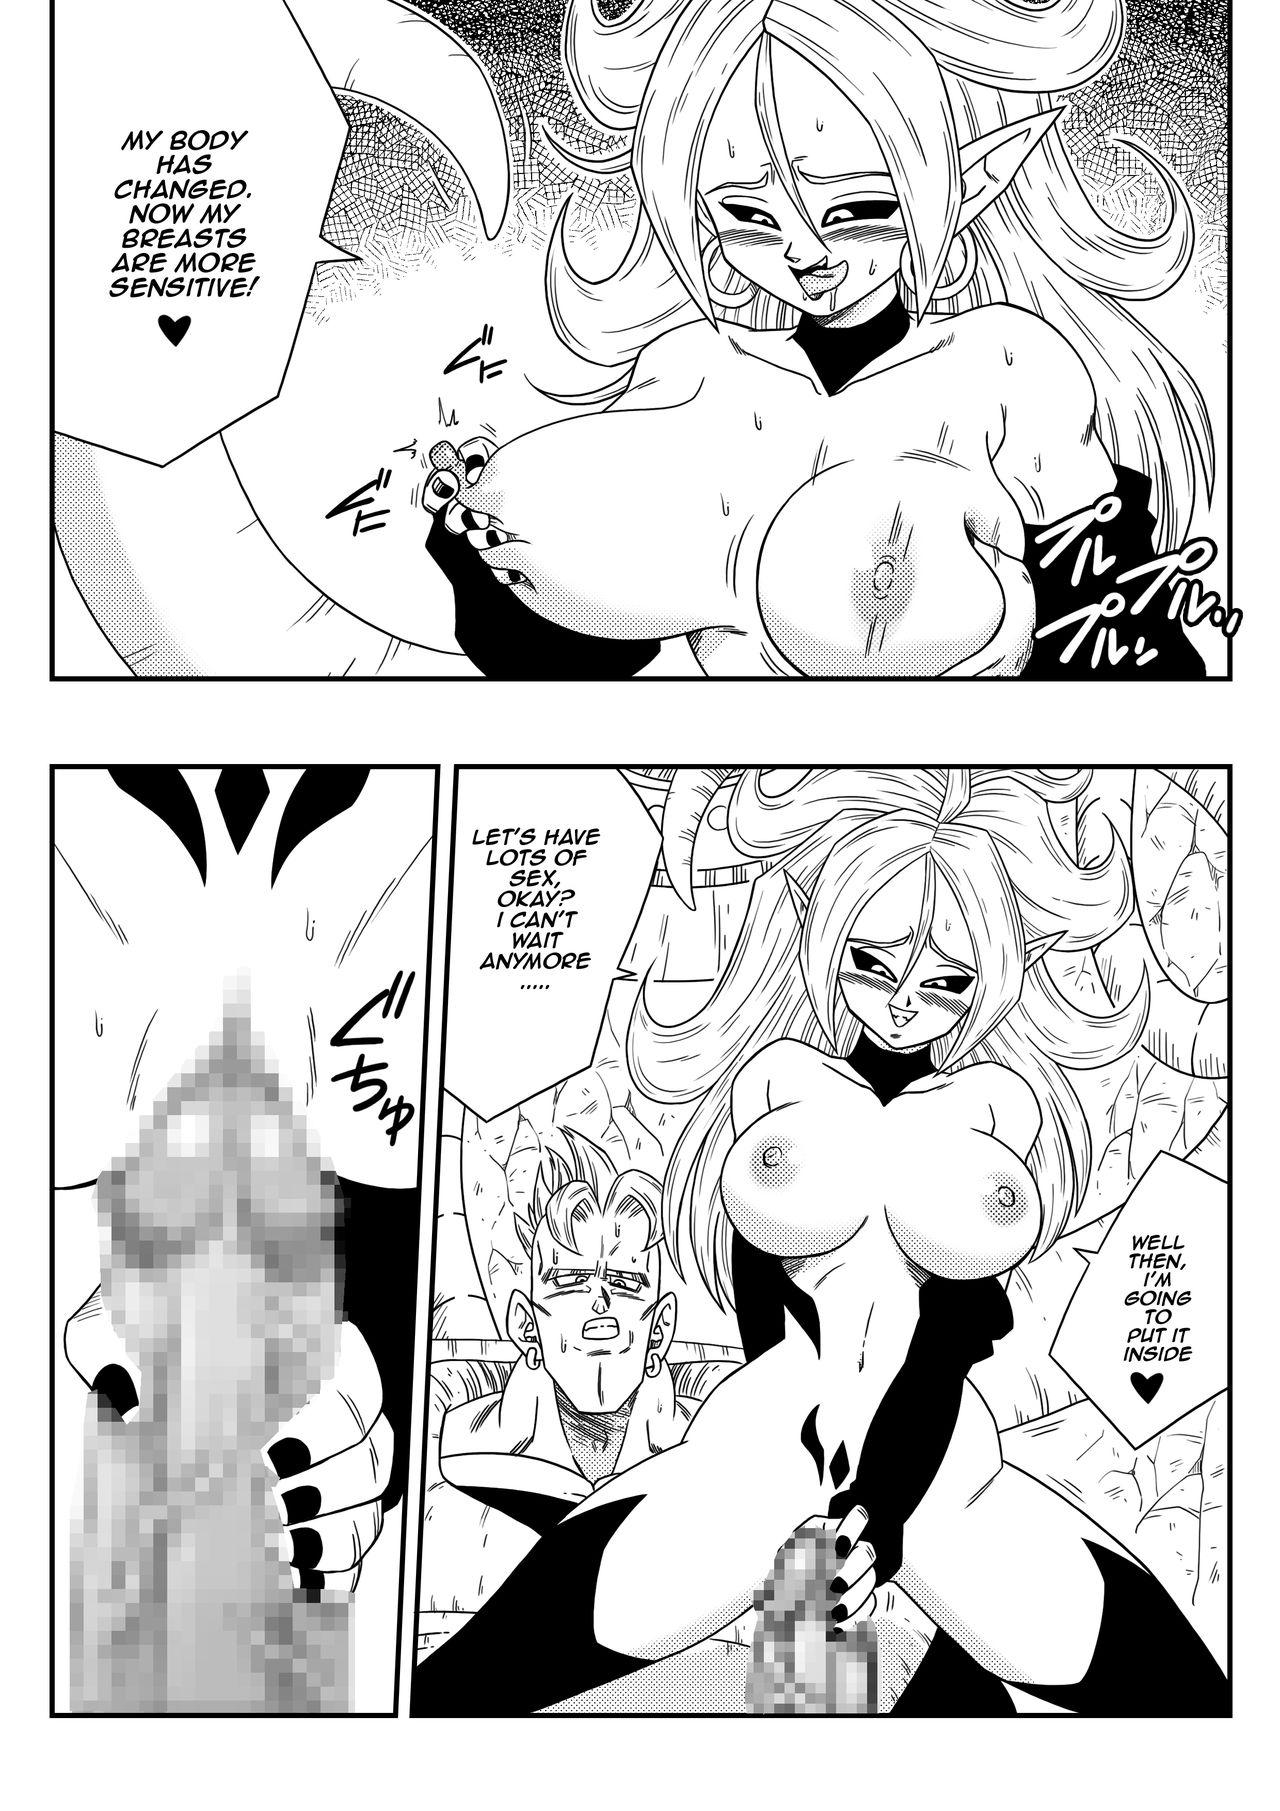 Kyonyuu Android Sekai Seiha o Netsubou!! Android 21 Shutsugen!!   Busty Android Wants to Dominate the World! 10